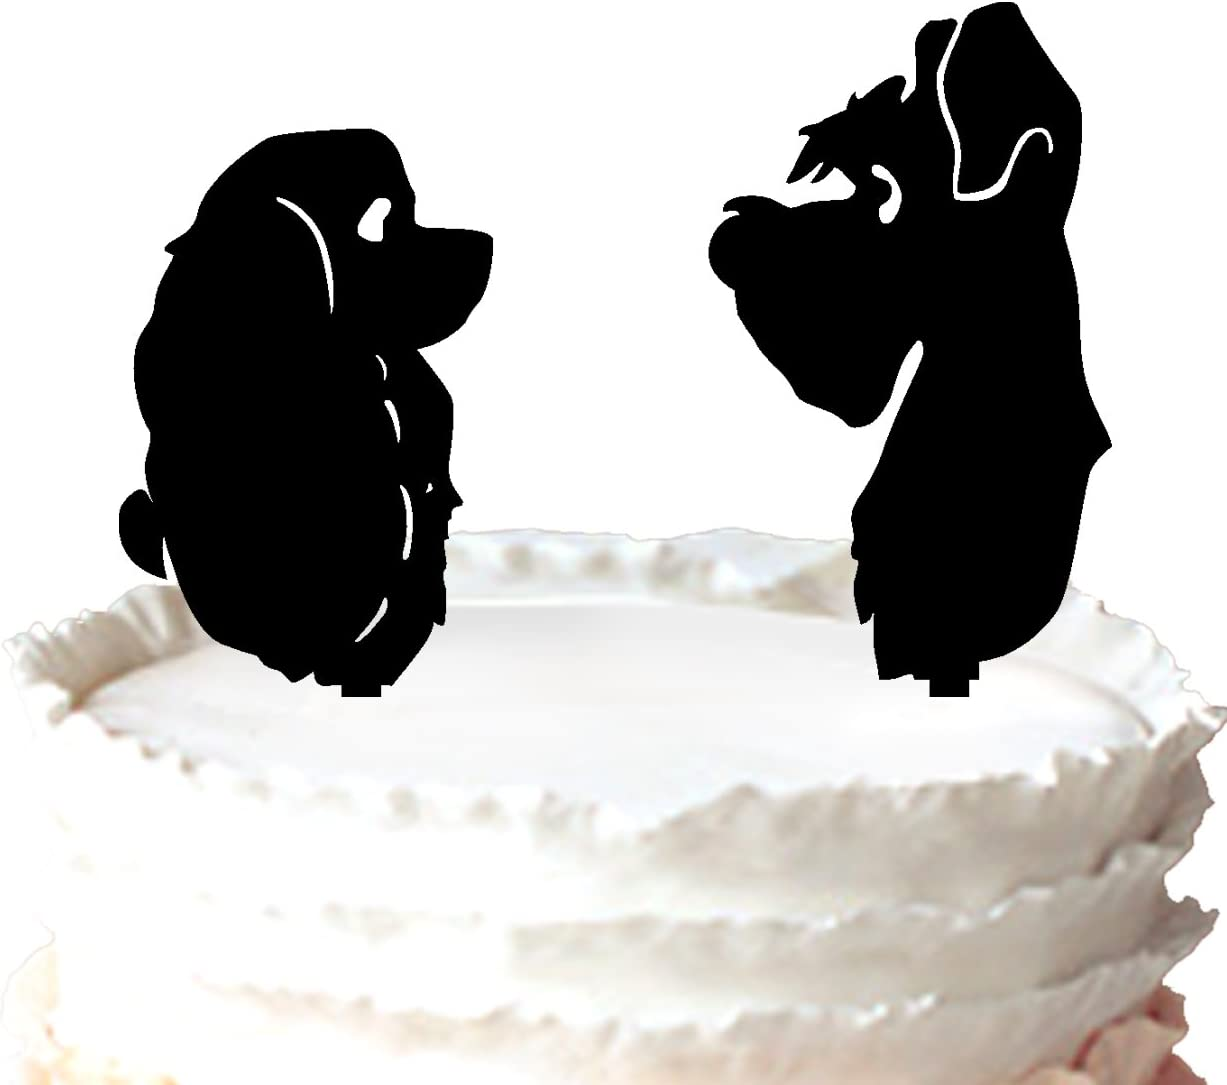 Kaishihui Silhouette Lady And The Tramp Topper For Wedding Cake Amazon Co Uk Kitchen Home